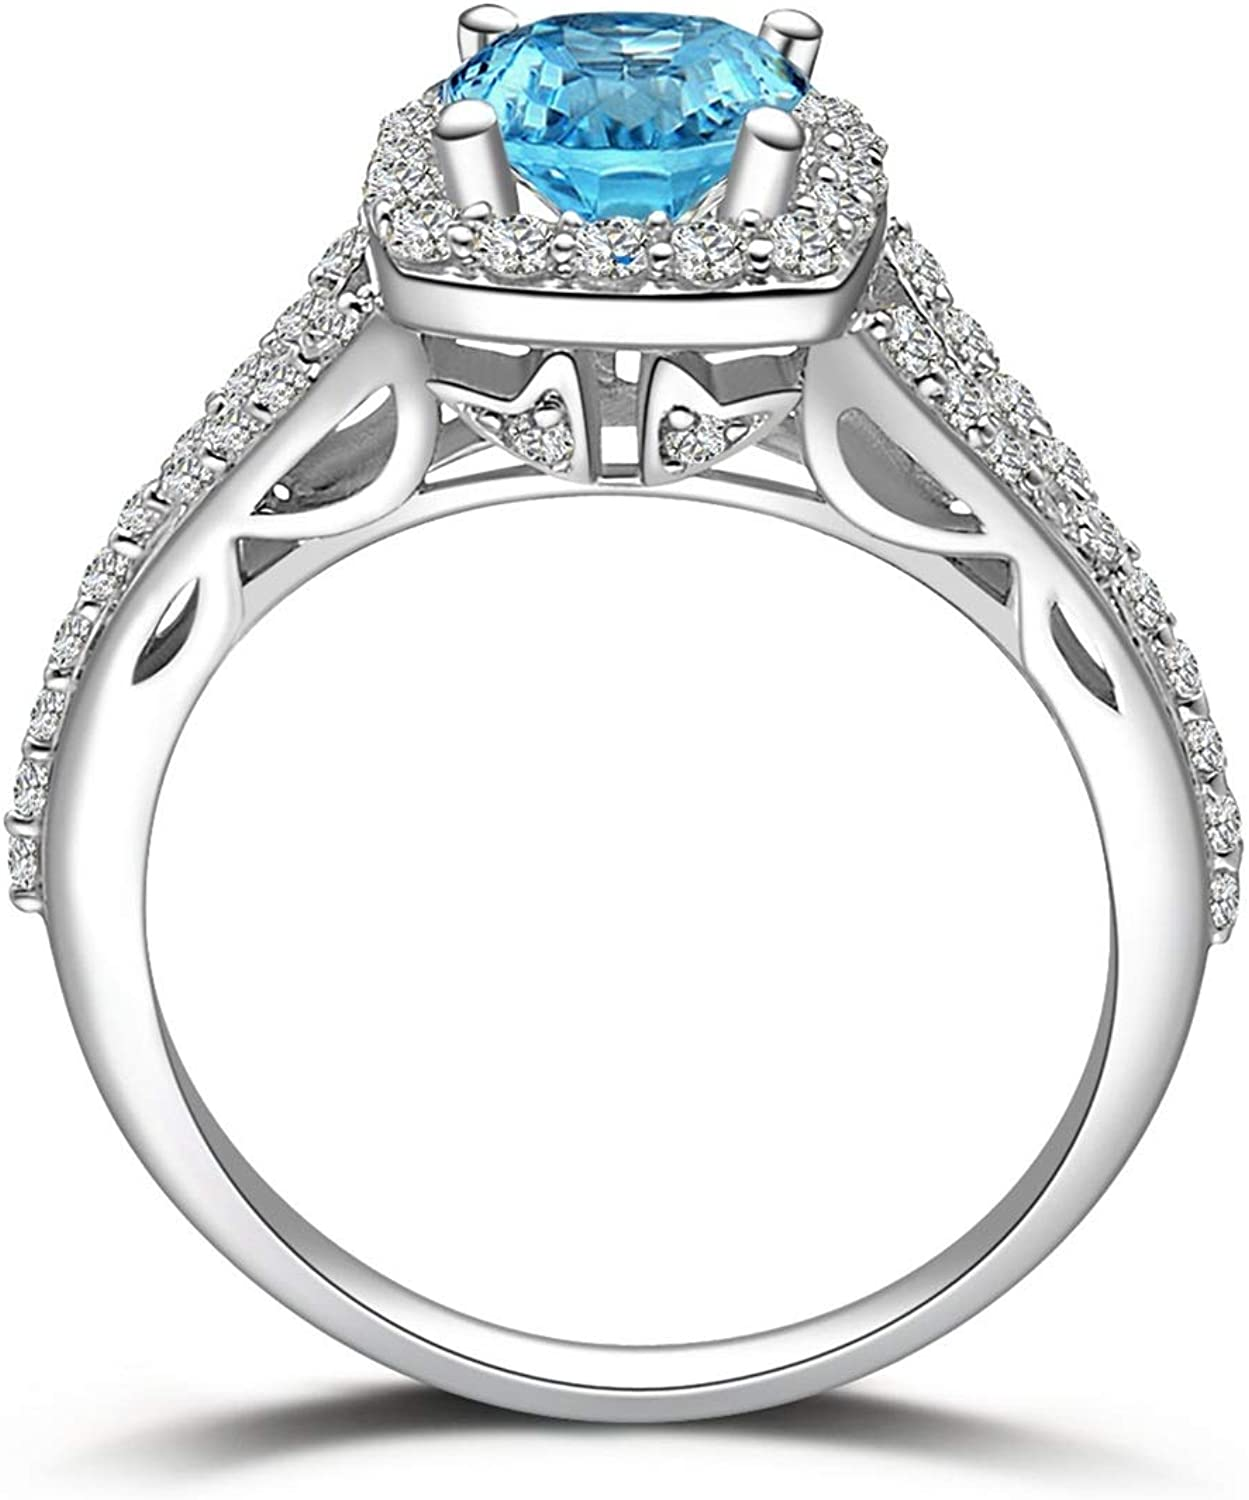 AMDXD Jewellery 925 Sterling Silver Wedding Rings Women Blue Round Cut Topaz Round Ring